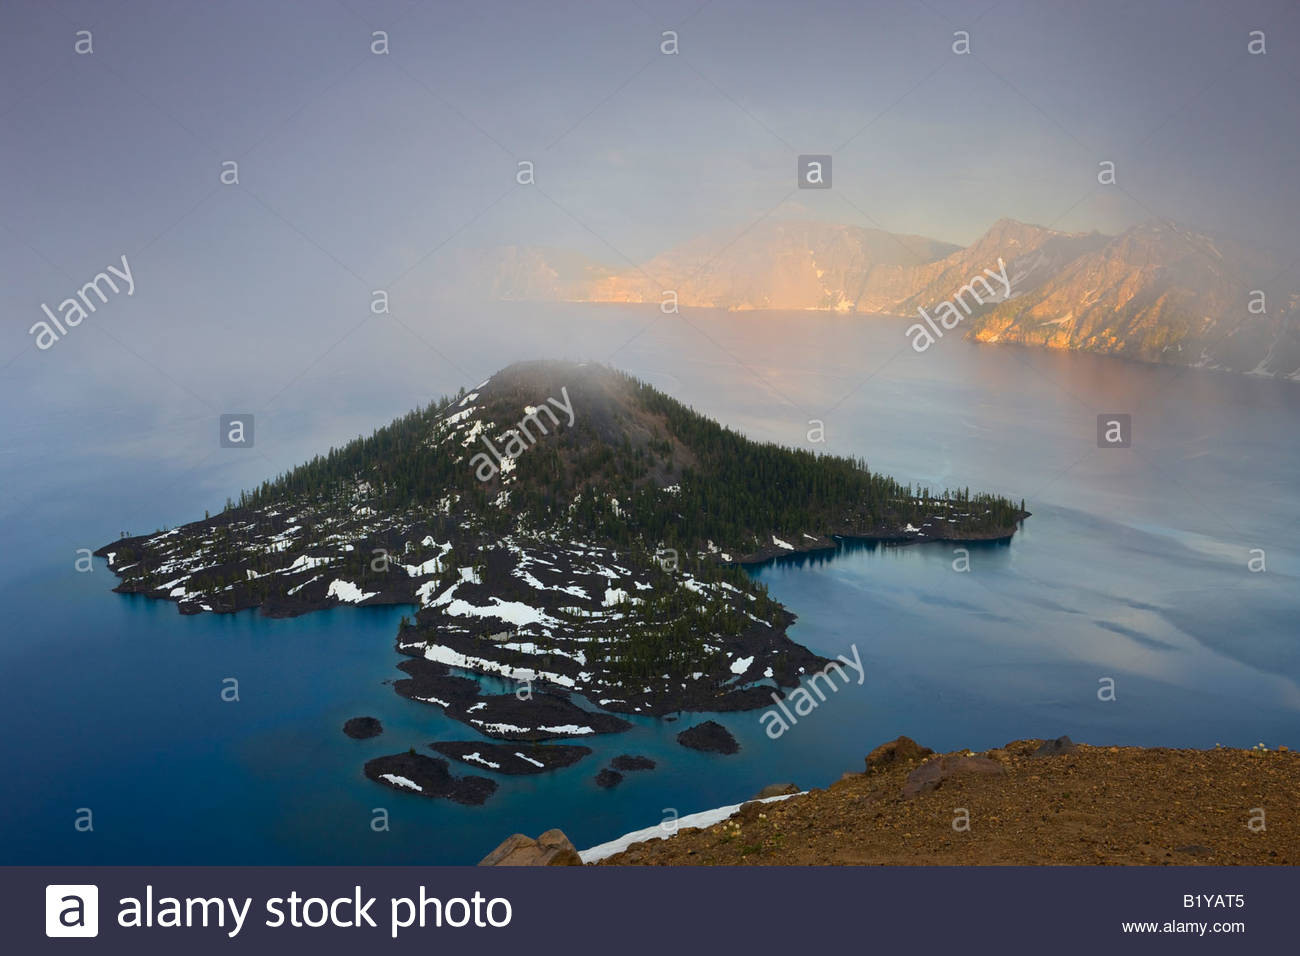 Thick fog seems to originate from the volcanic cone of Wizard Island located in Crater Lake, Oregon. - Stock Image